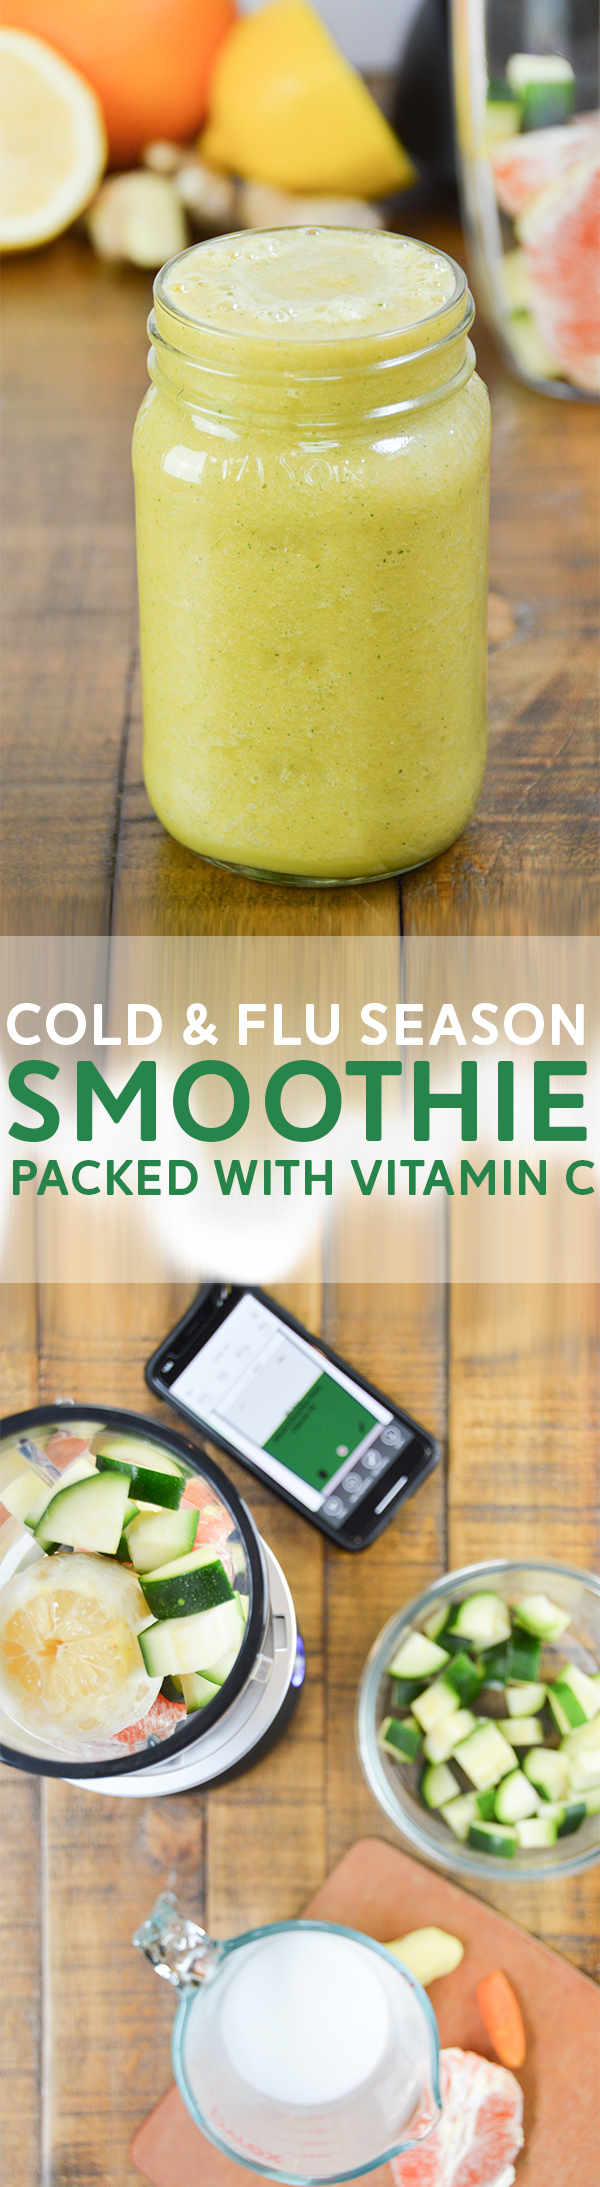 Cold & Flu Season Smoothie